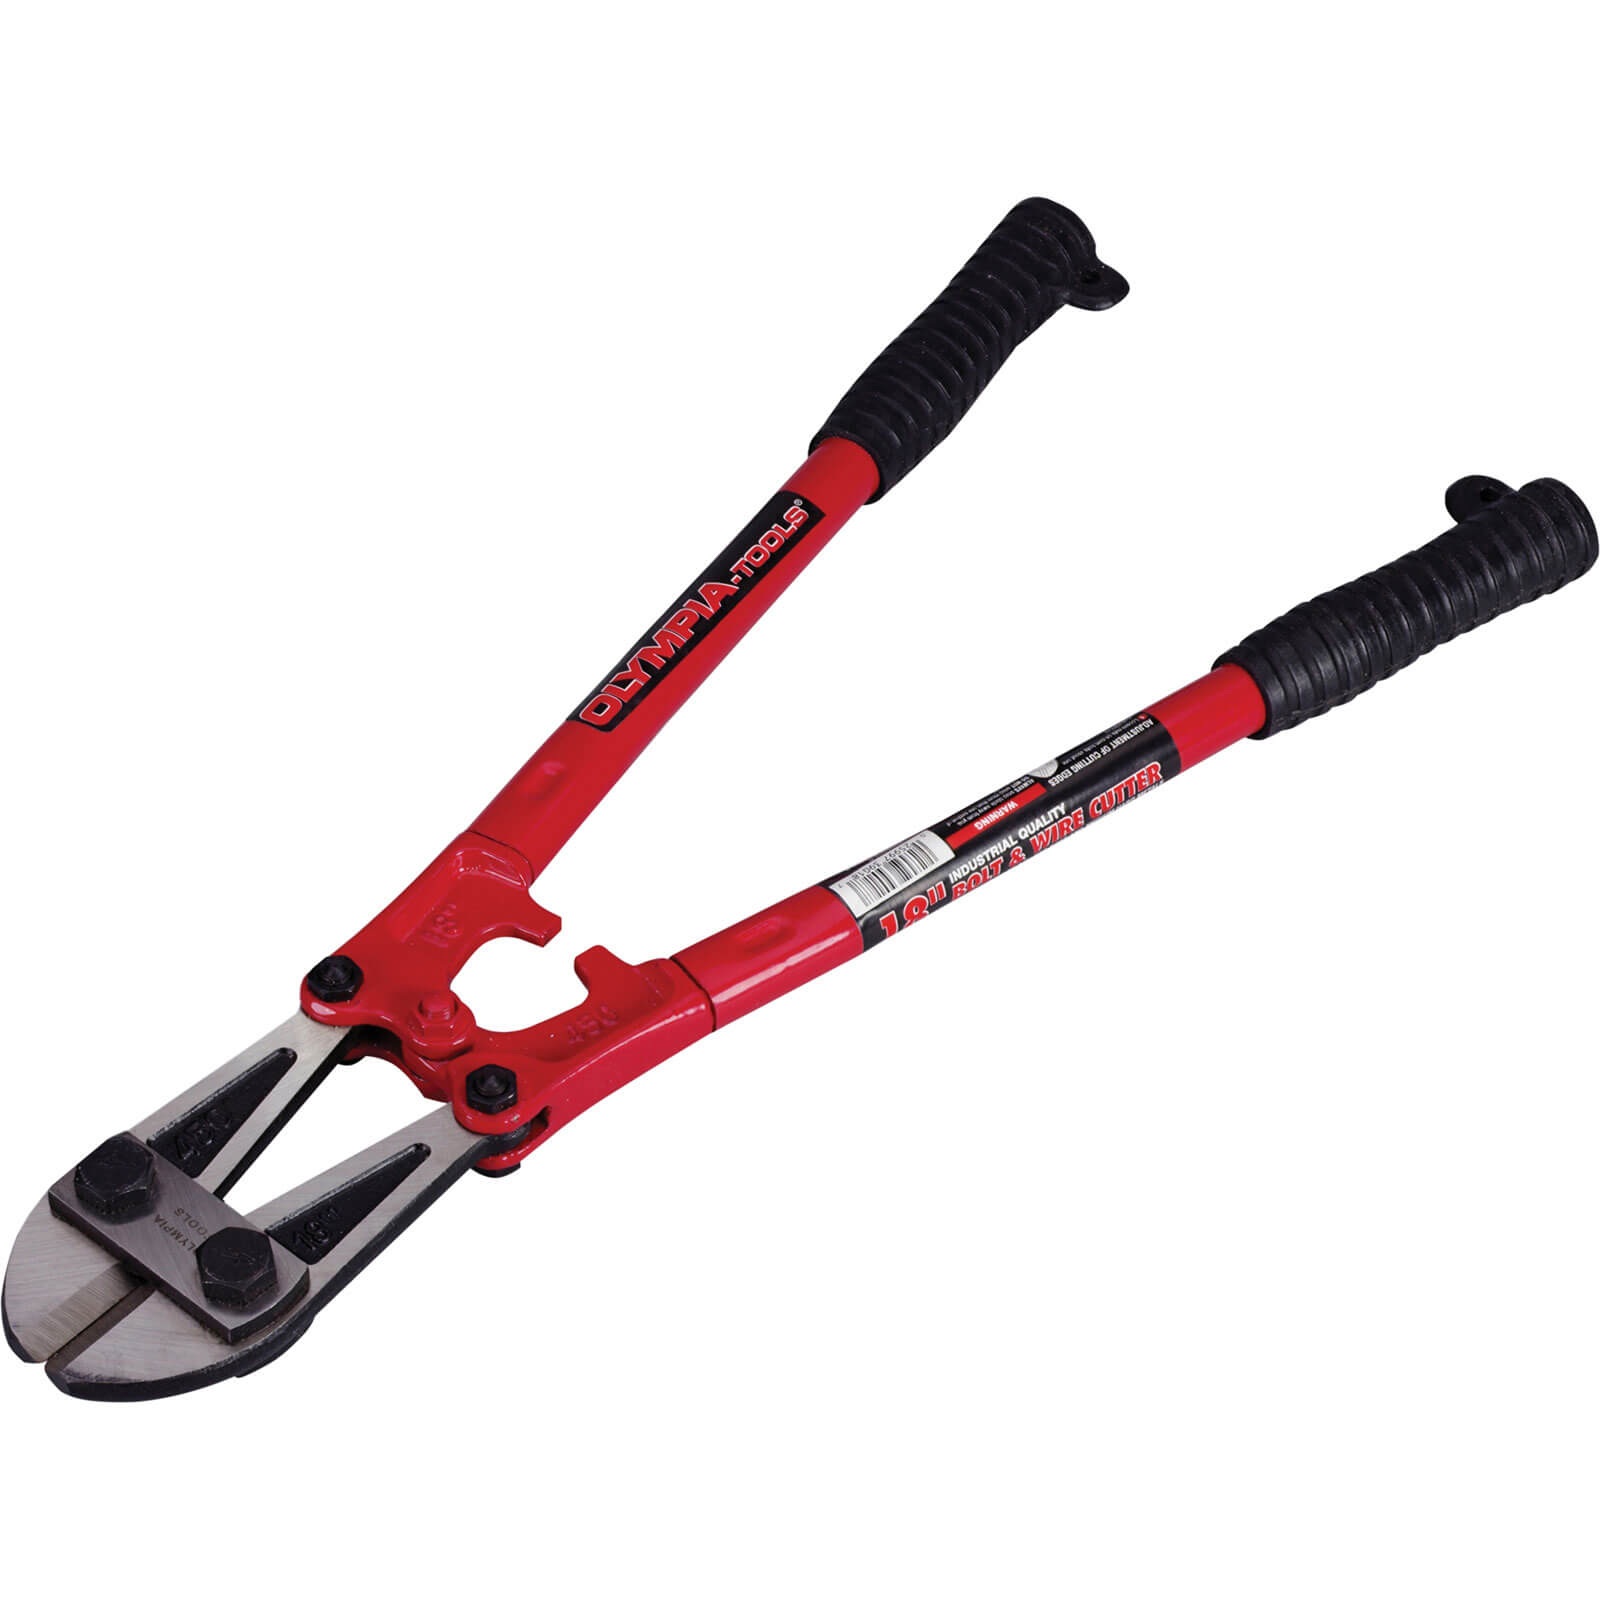 Image of Olympia Centre Cut Bolt Cutters 1200mm